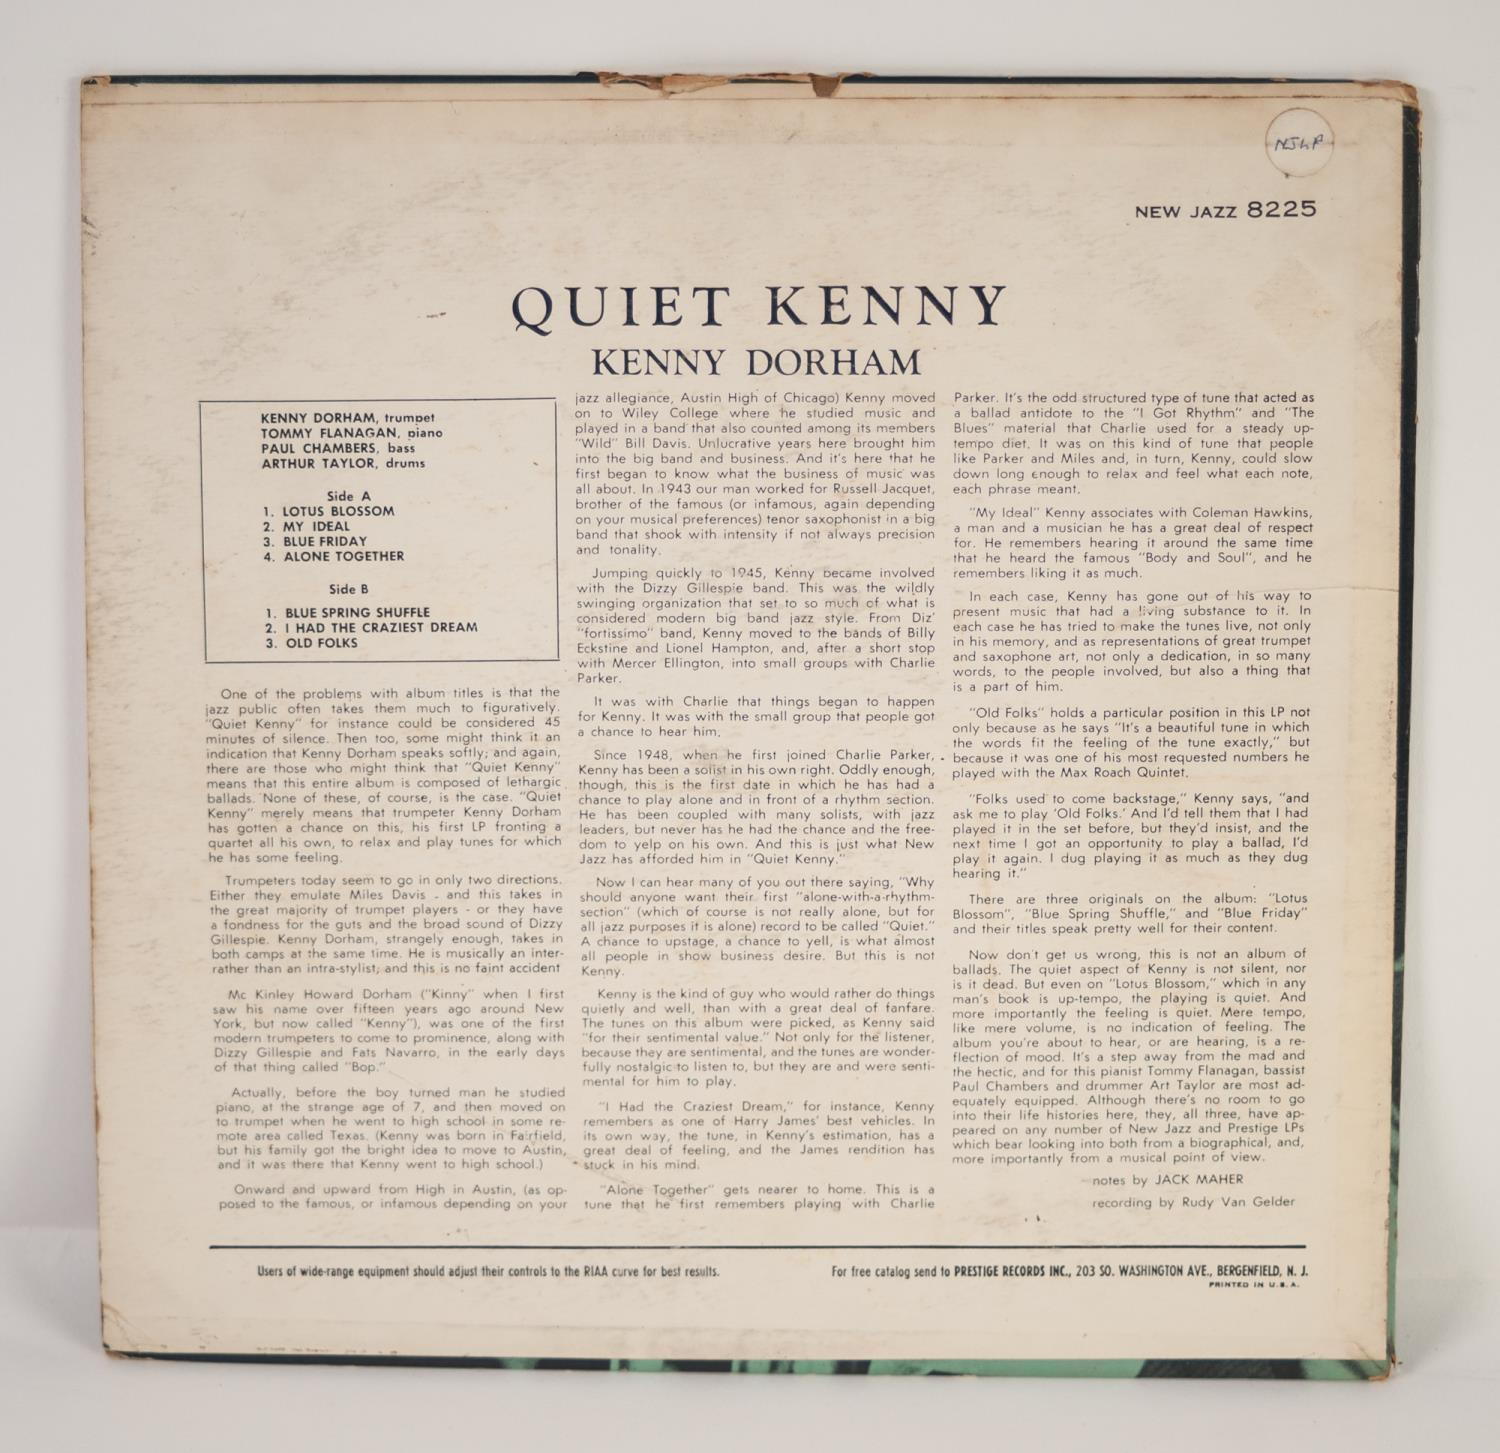 JAZZ, VINYL RECORDS- D IS FOR KENNY DORHAM-QUIET KENNY, NEW JAZZ (NJLP 8225). Original US pressing - Image 2 of 7